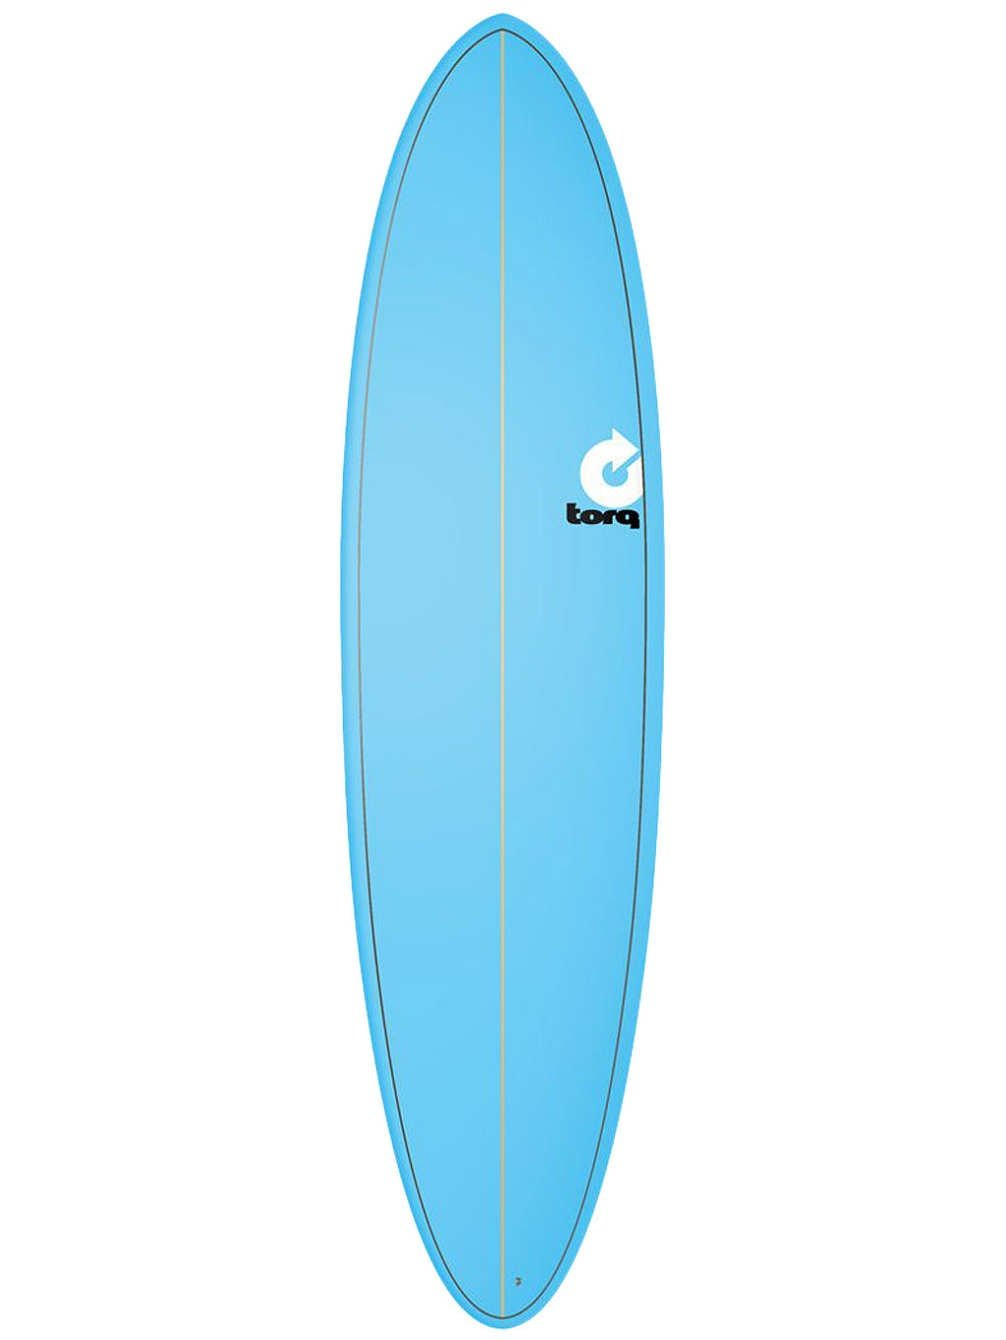 Tabla de surf Torq epoxy 7.2 topson - Blue: Amazon.es: Deportes y aire libre